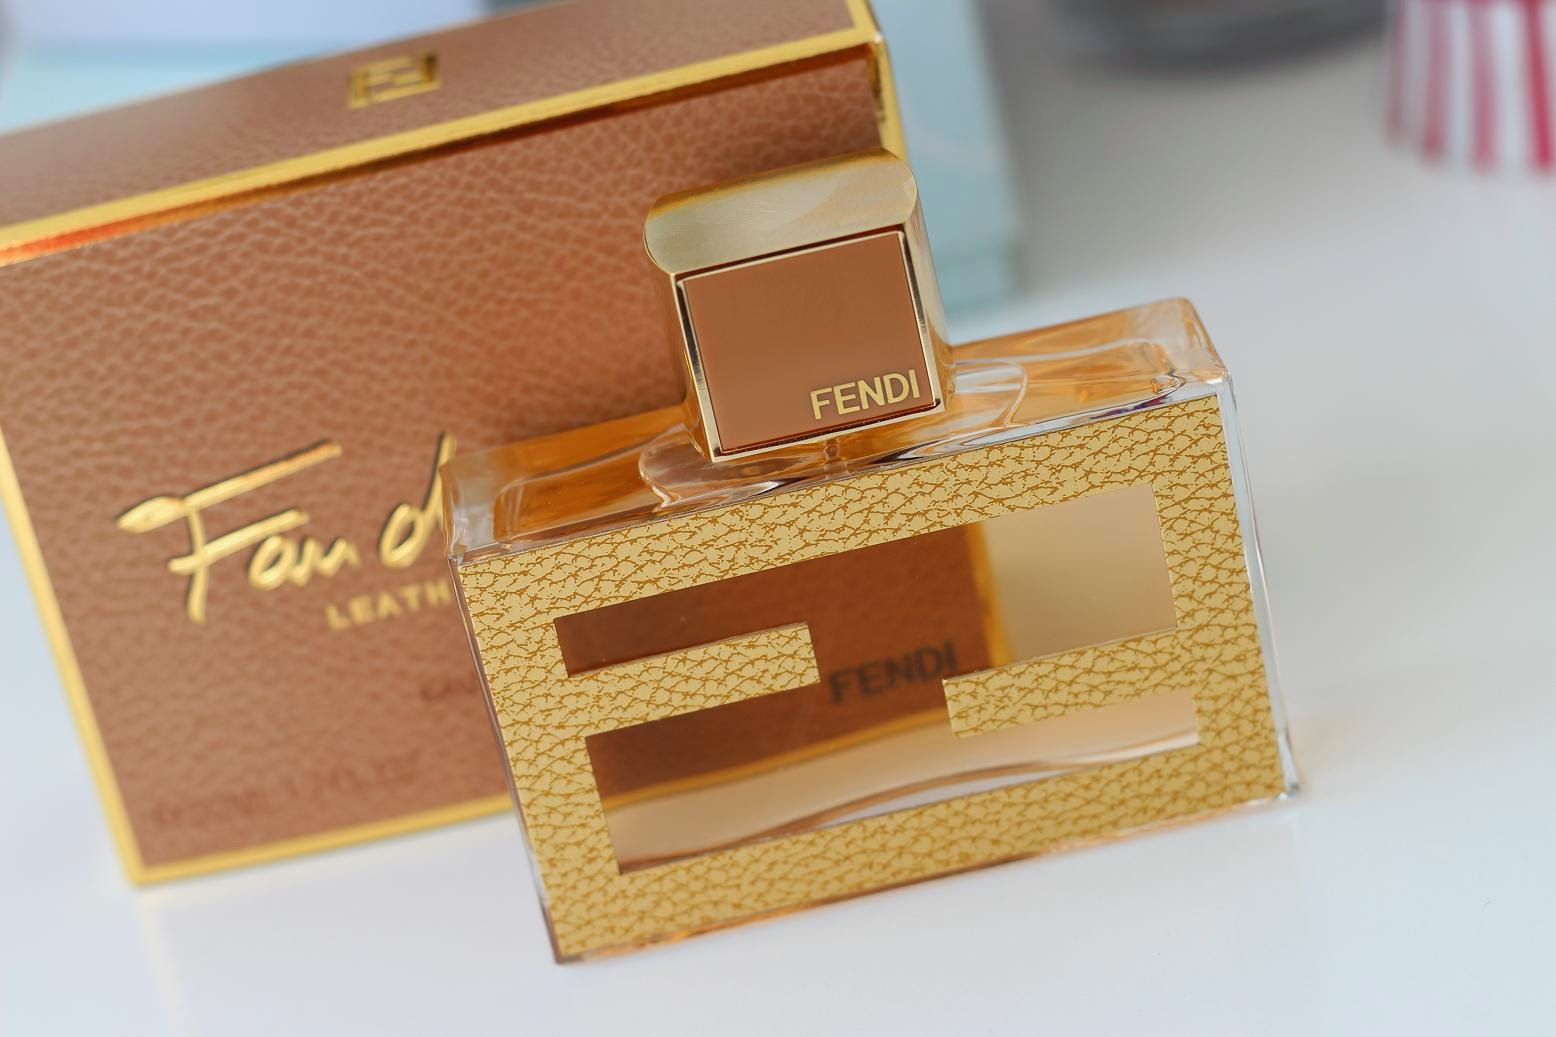 Fan di Fendi Leather Essence